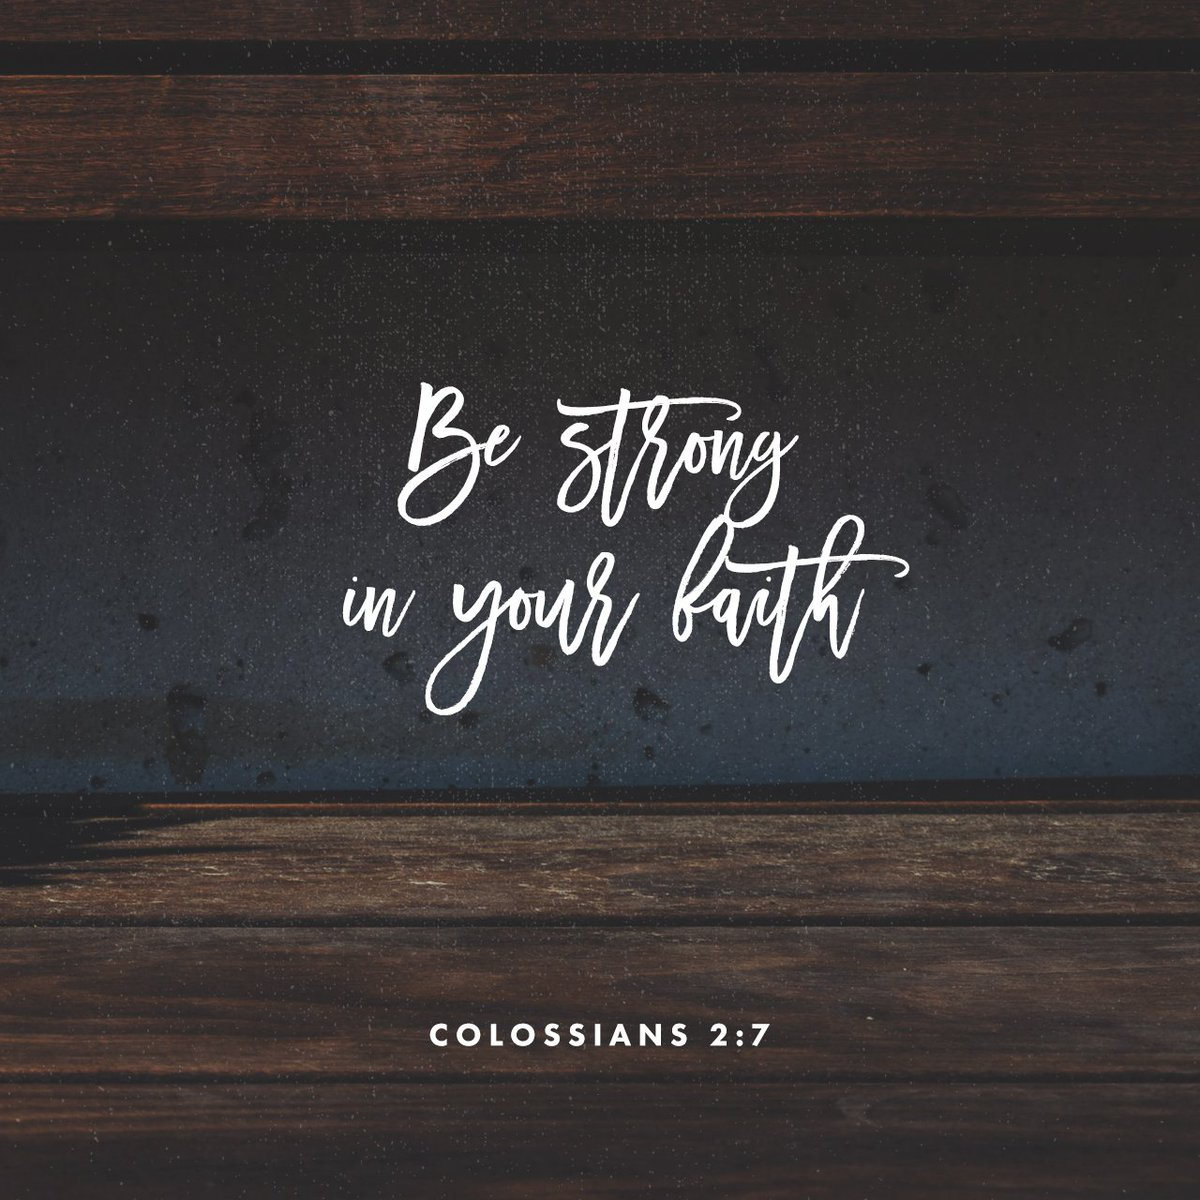 Plant your roots in Christ and let him be the foundation for your life. Be strong in your… https://t.co/UZrrE2jTRX https://t.co/SwC5QA5wlL